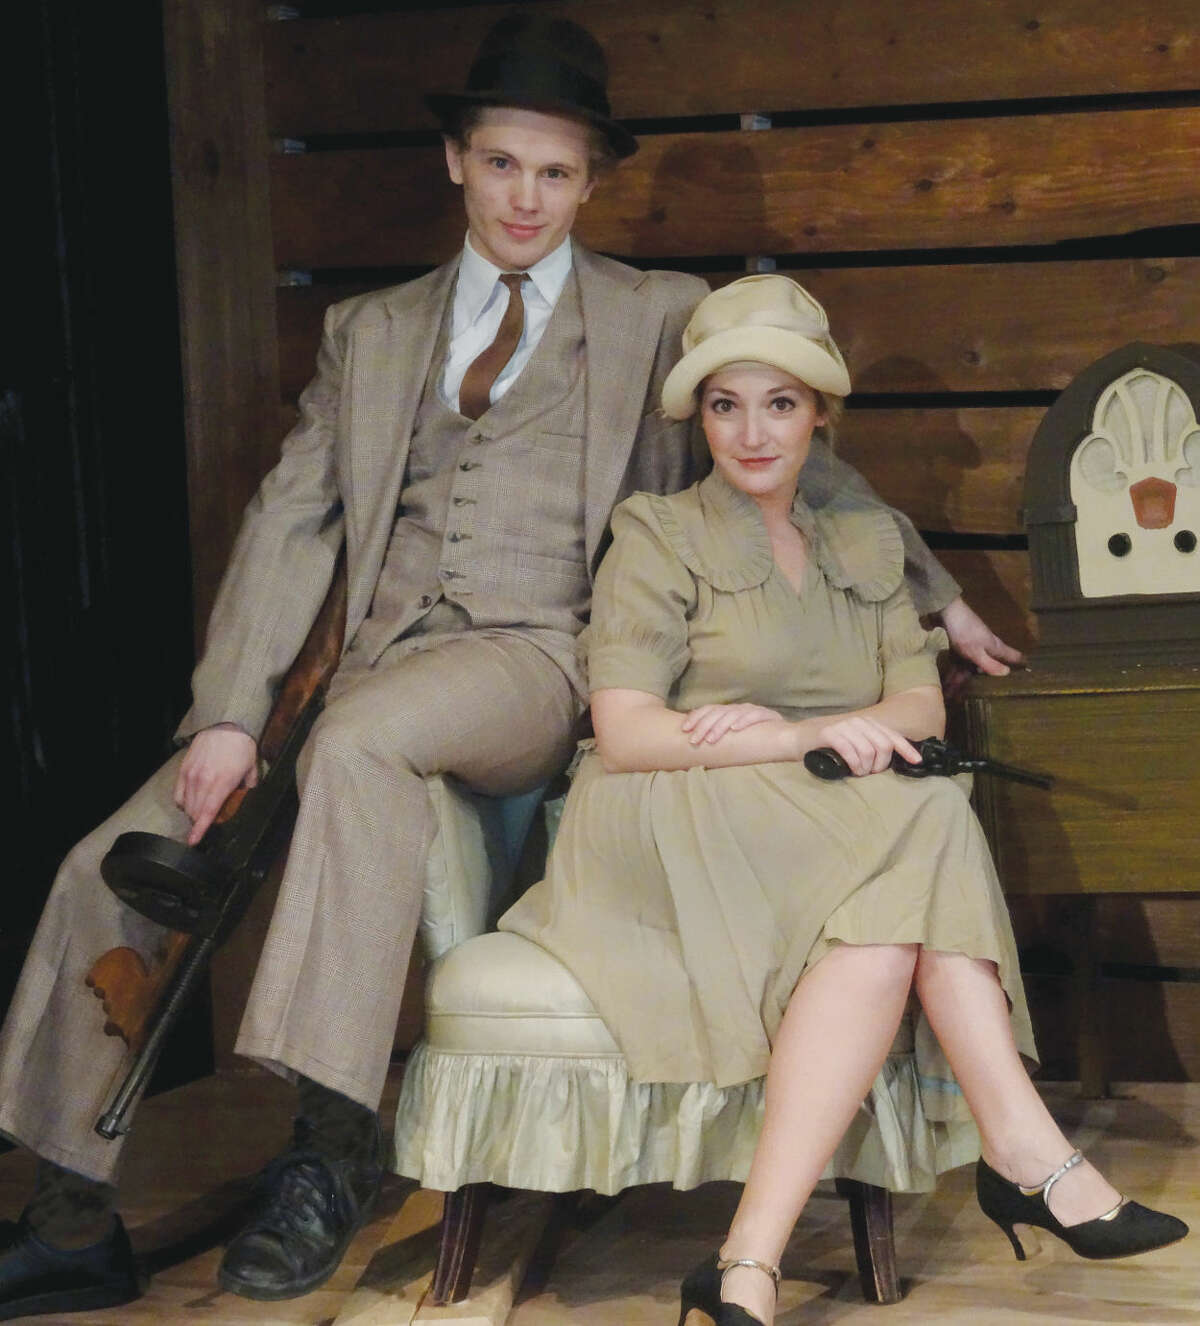 How do noted bank robbers and murderous lovers spend their free time? Find out at Curtain Call's production of Bonnie and Clyde, playing in The Kweskin Theatre, Stamford, November 13 - December 12. This is the first time this new musical has been performed in the area and stars in the title roles: Arielle Boutin and William Bednar.